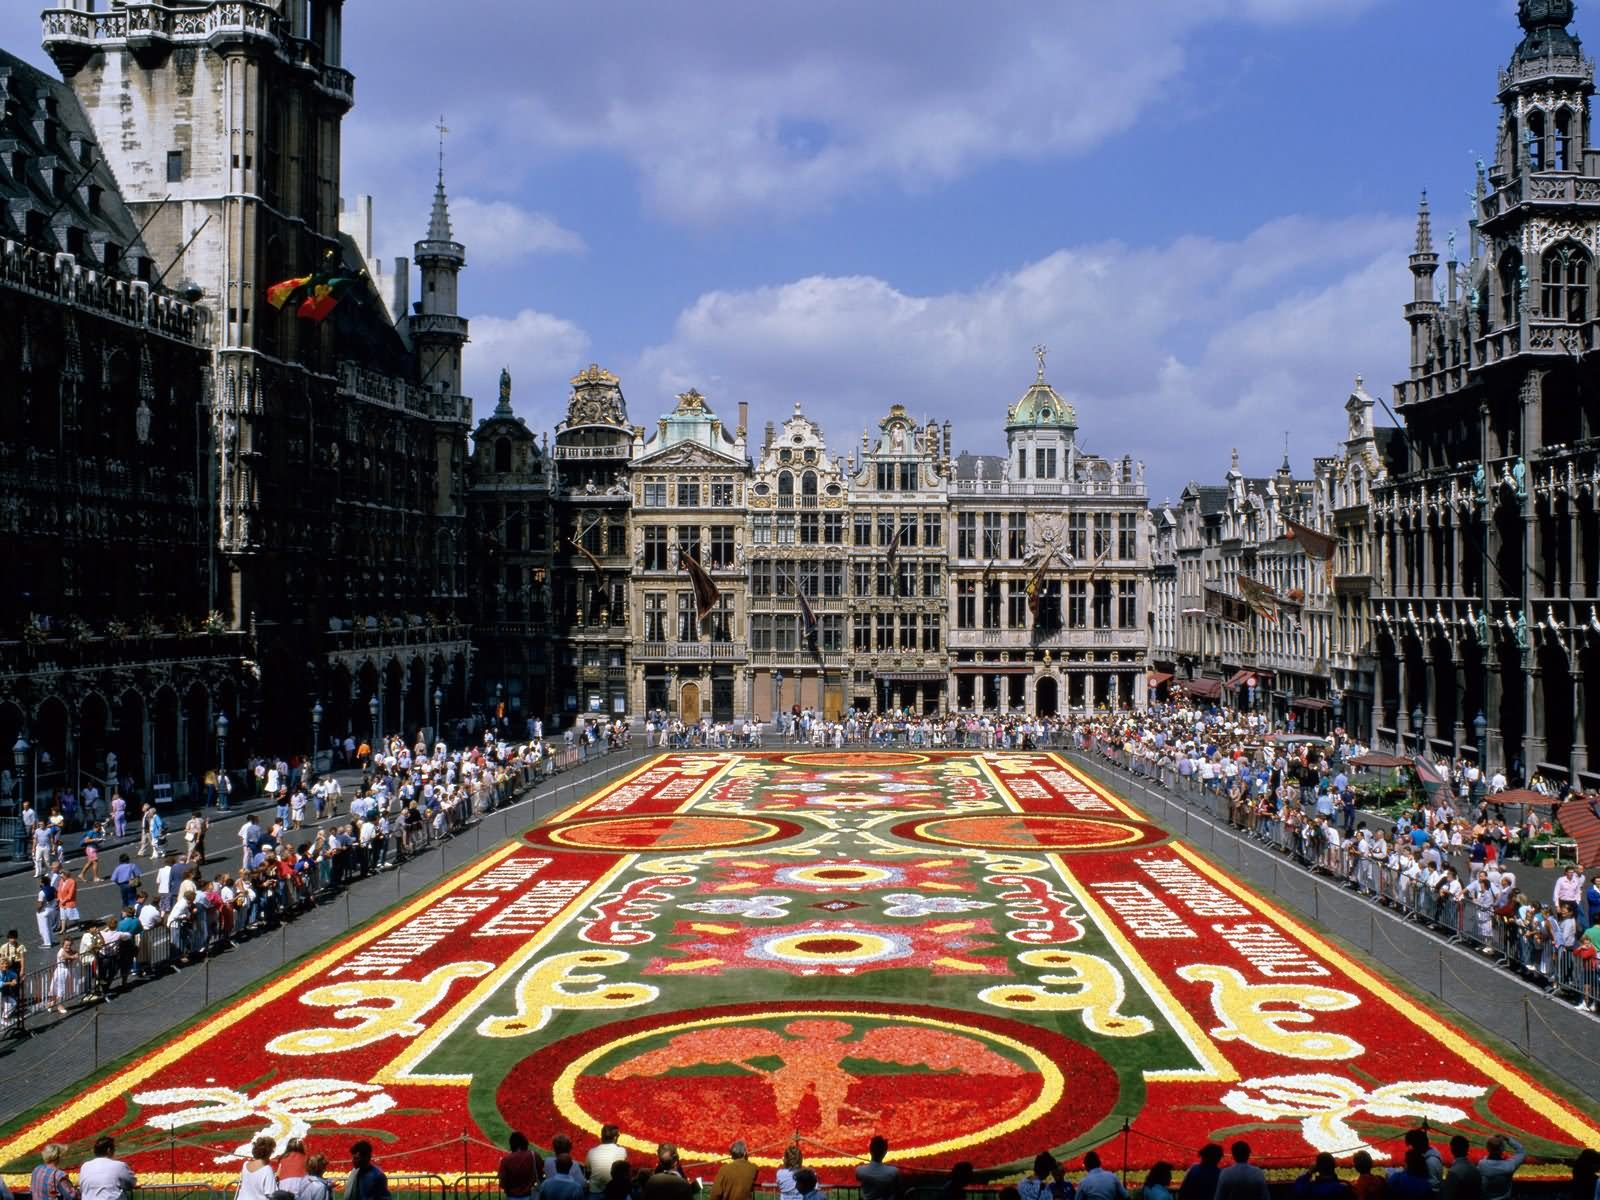 40 Very Beautiful Pictures And Photos Of The Grand Place In Brussels